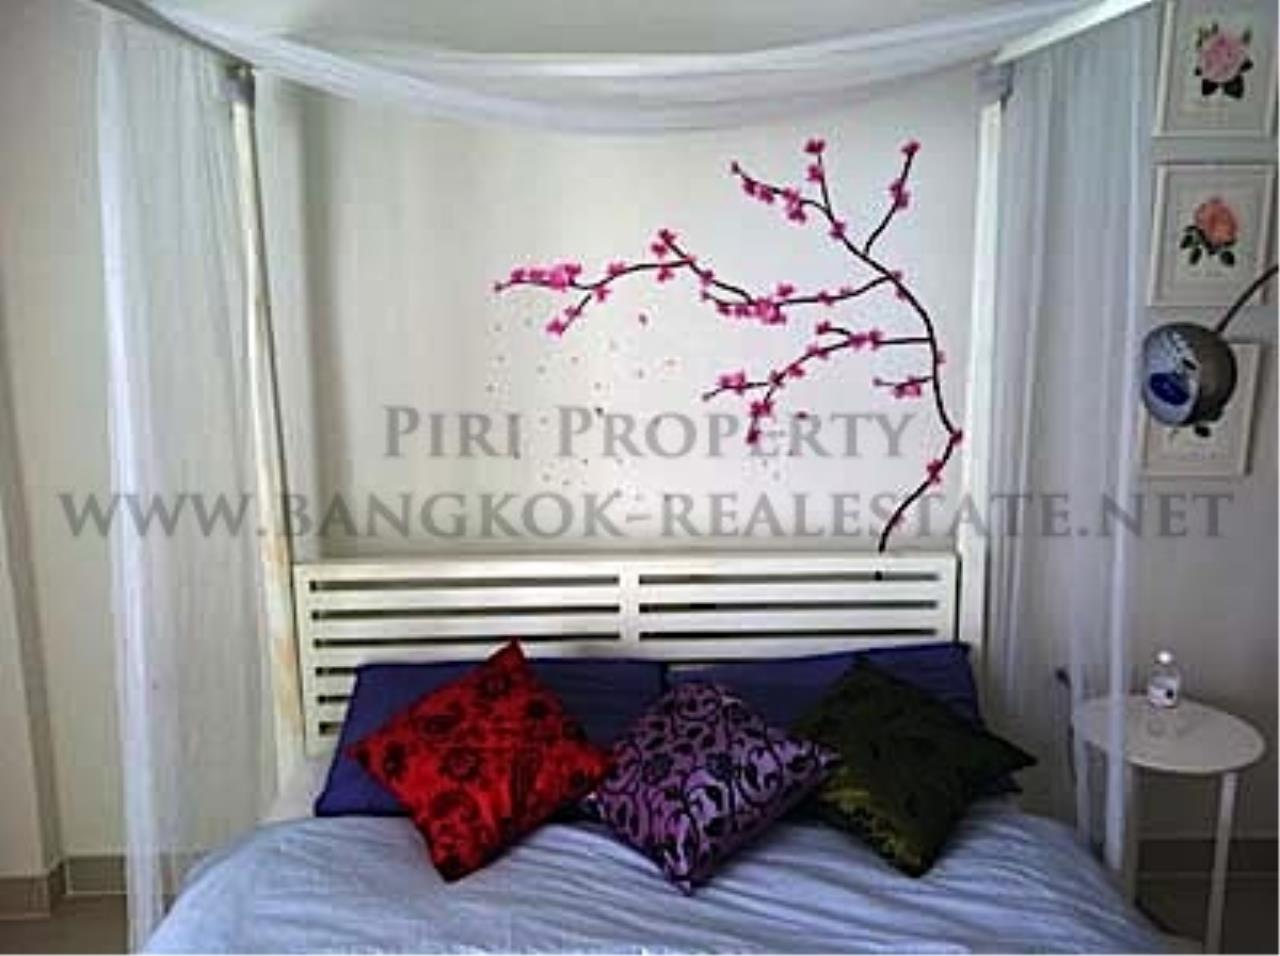 Piri Property Agency's iHouse - Nicely Furnished One Bedroom Unit 7